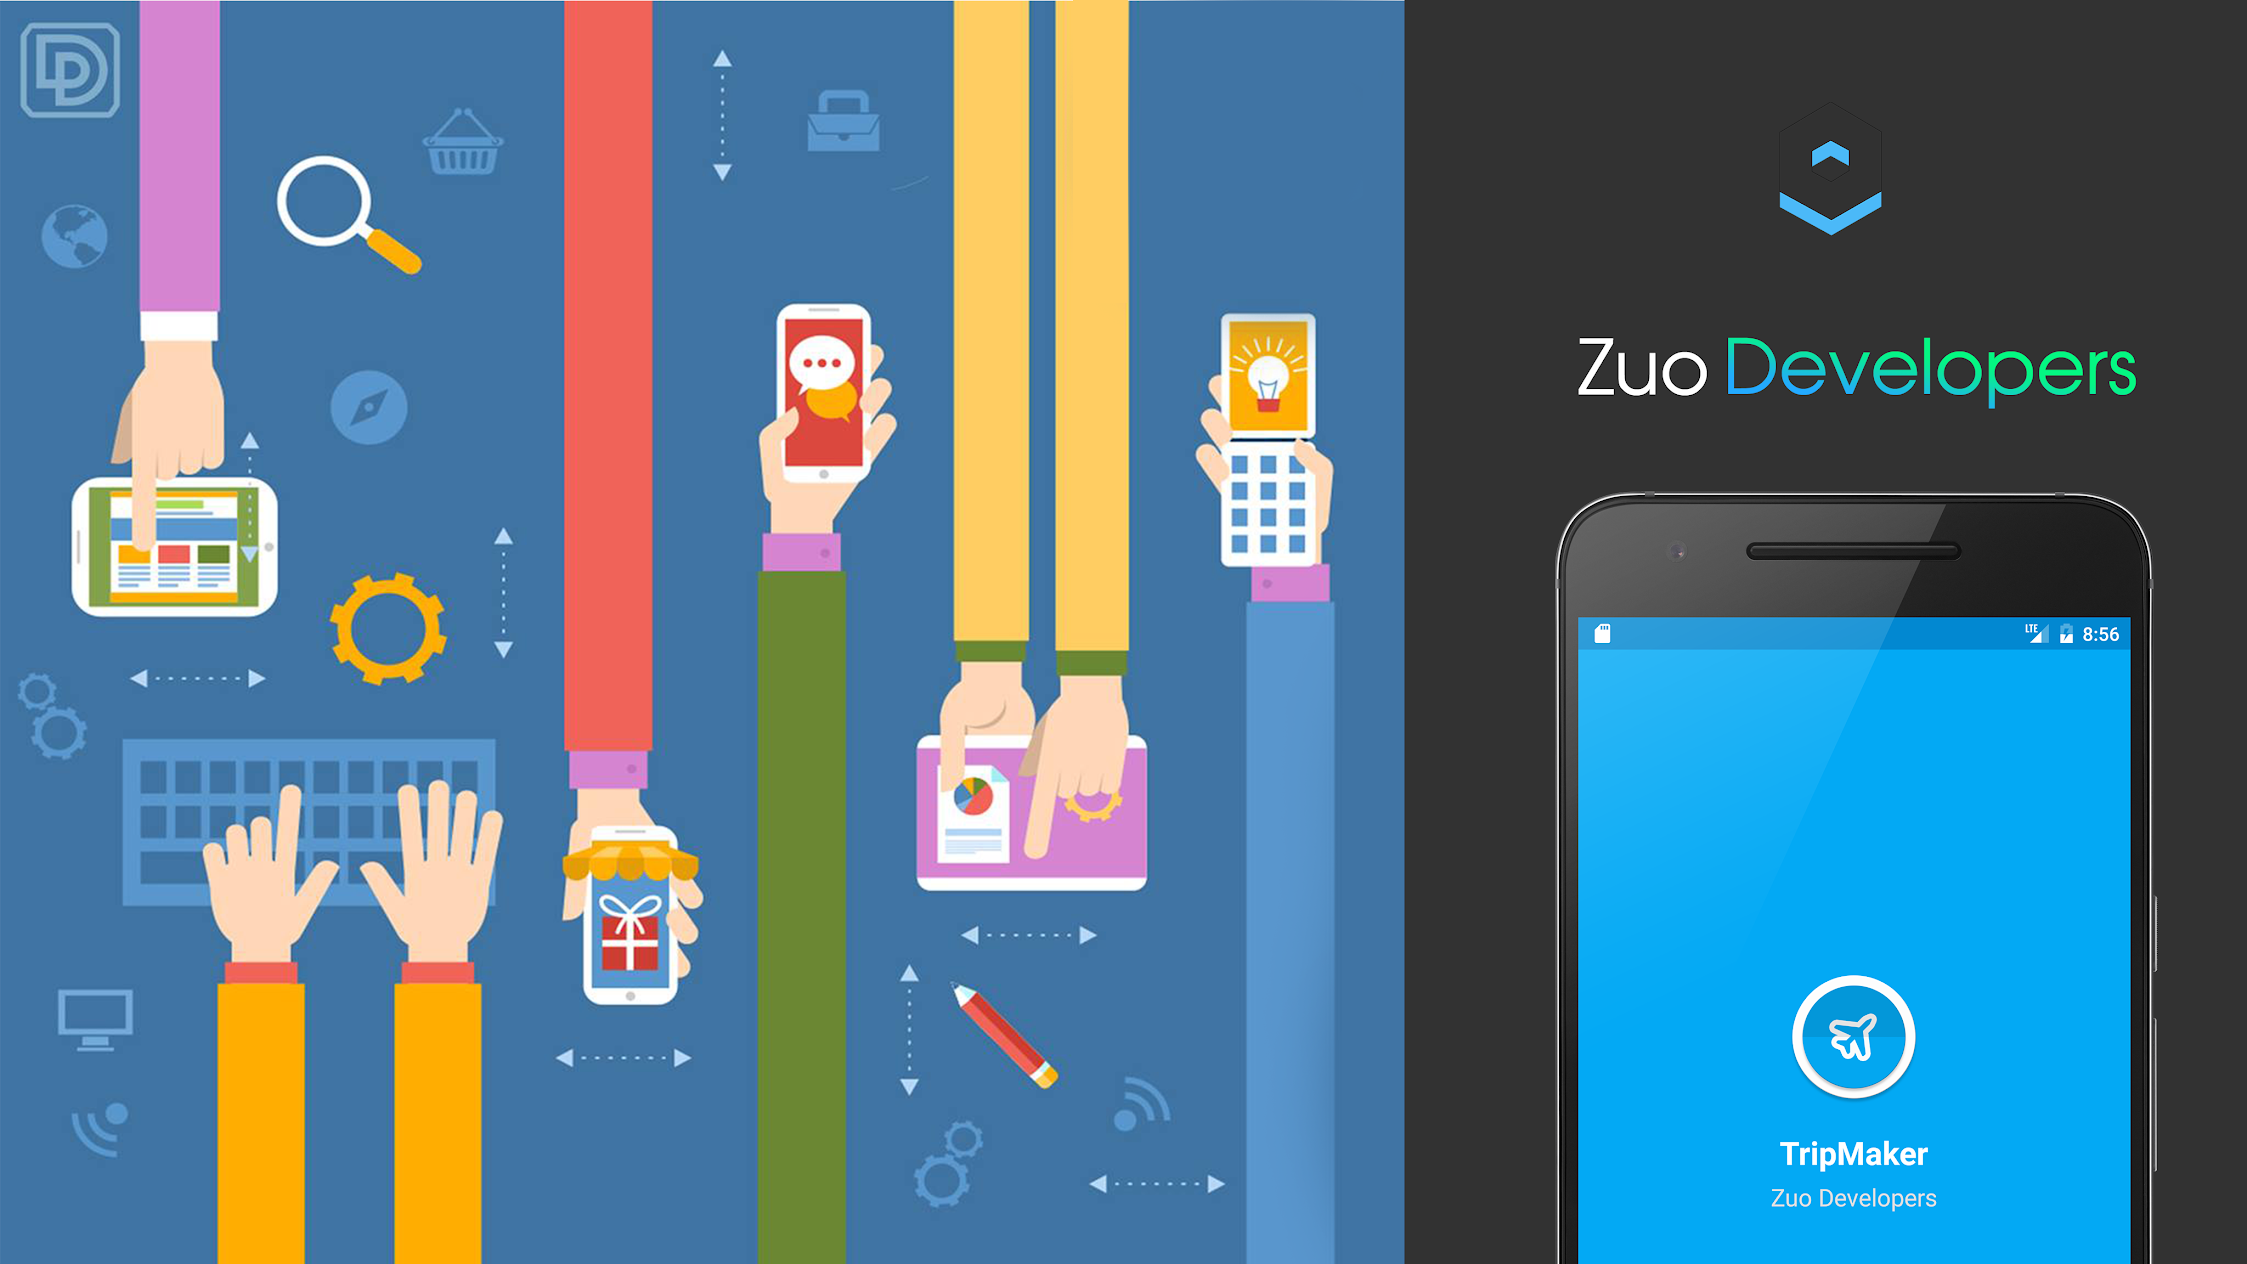 Zuo Developers